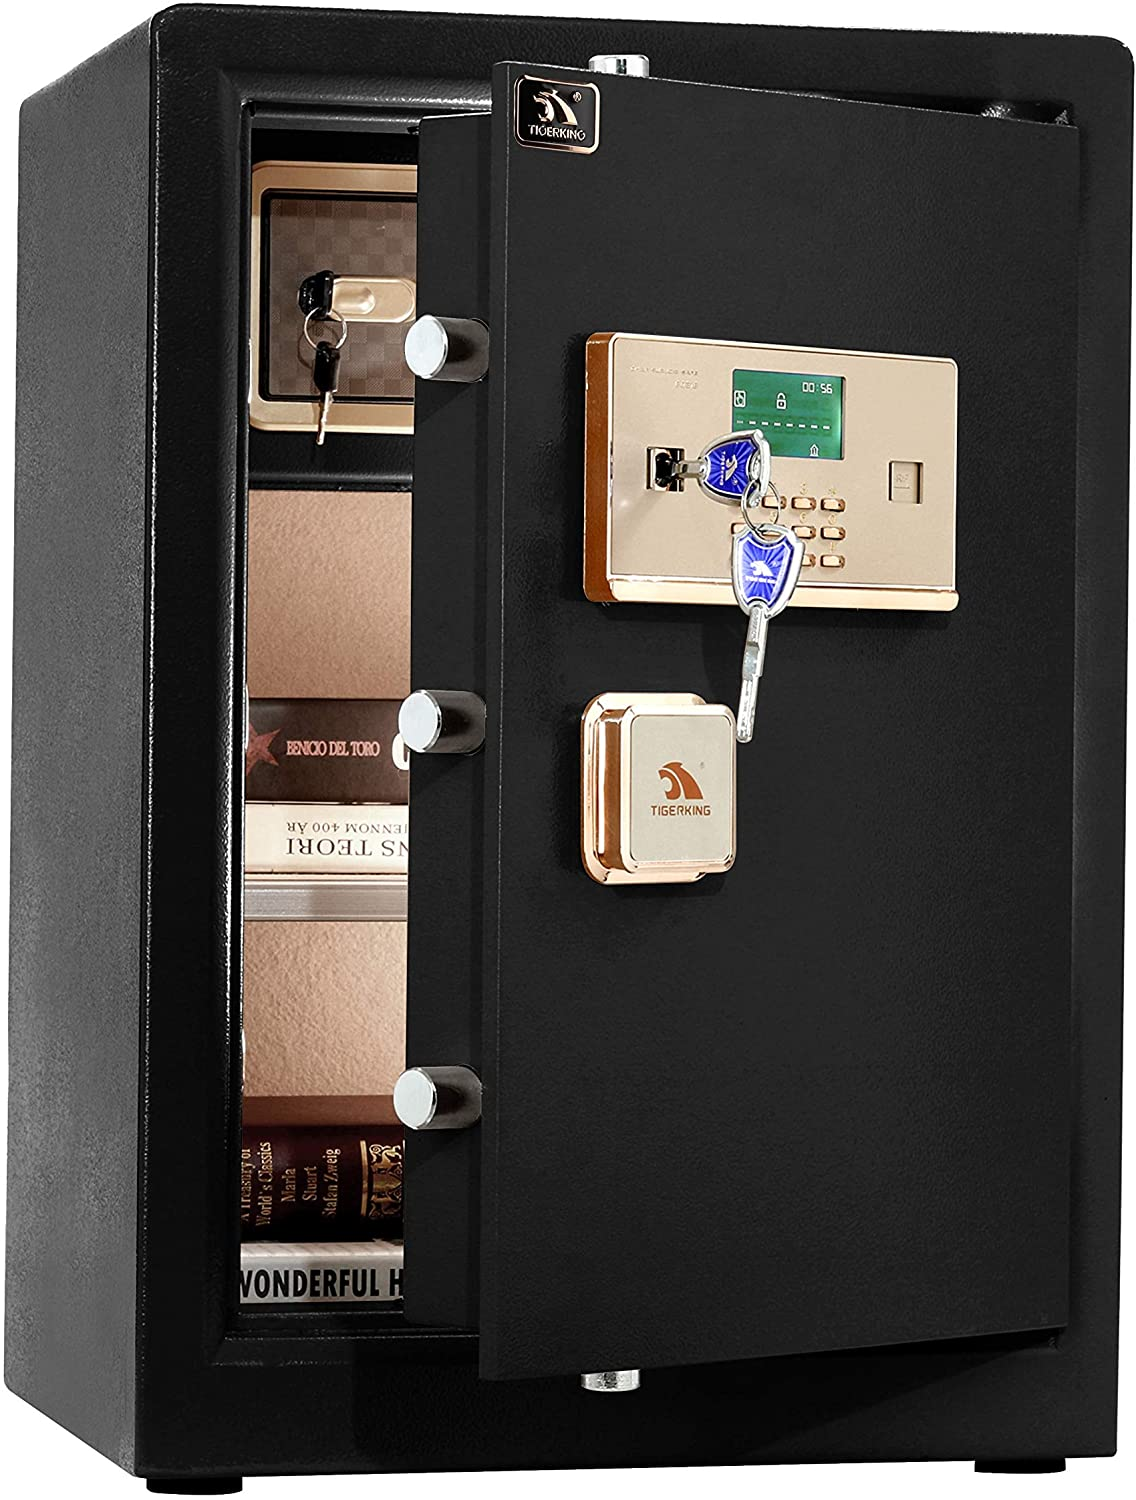 TIGERKING Digital Security Safe Box,Double Safety Key Lock and Password,Special own Interior Lock Box Safe for Home Office 3.7 Cubic Black: Office Products